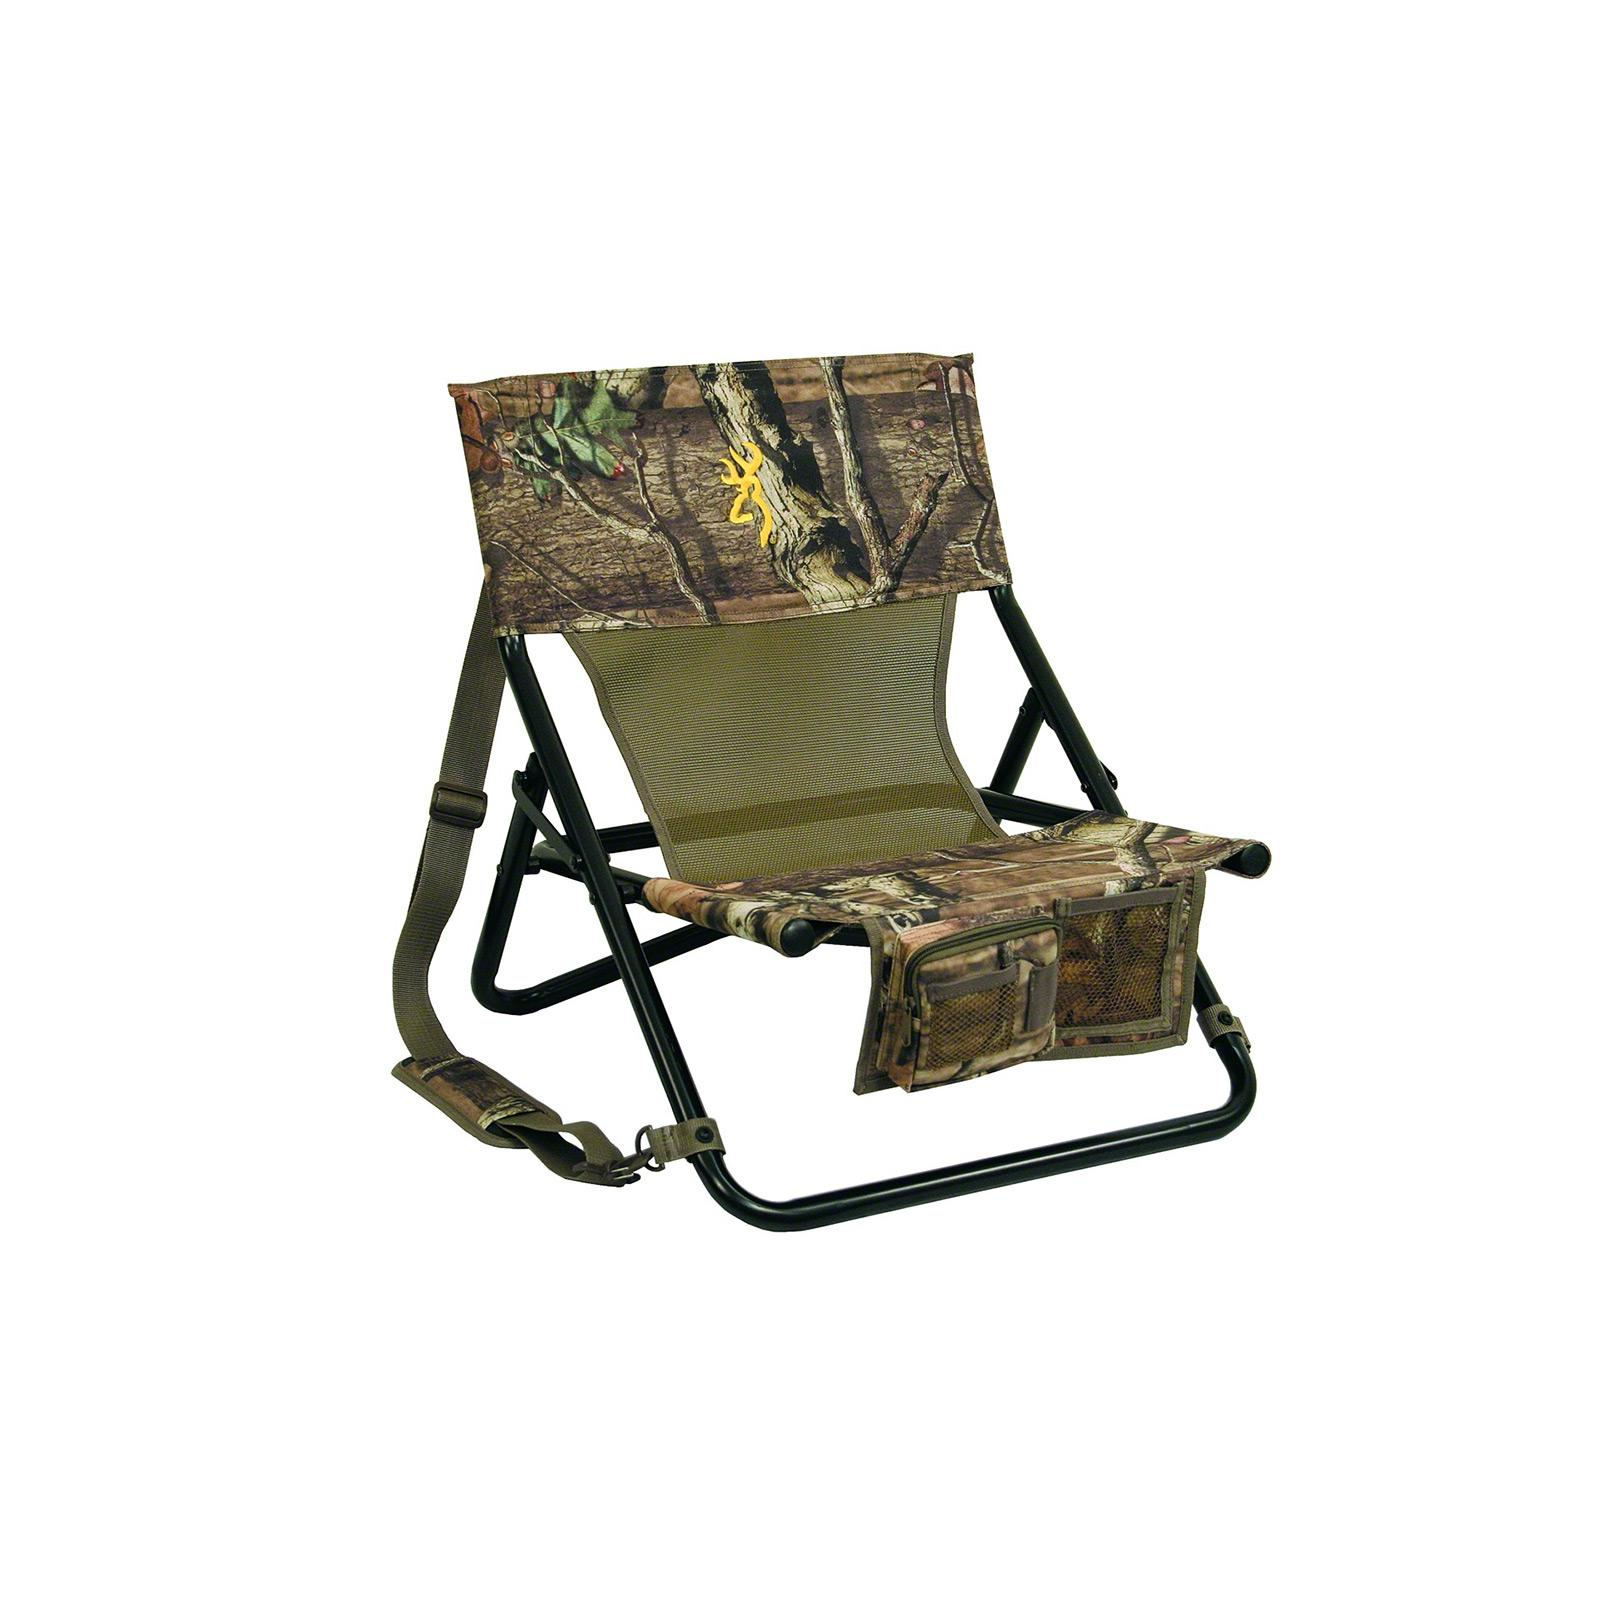 Browning Woodland Compact Folding Hunting Chair APHD, 8533401